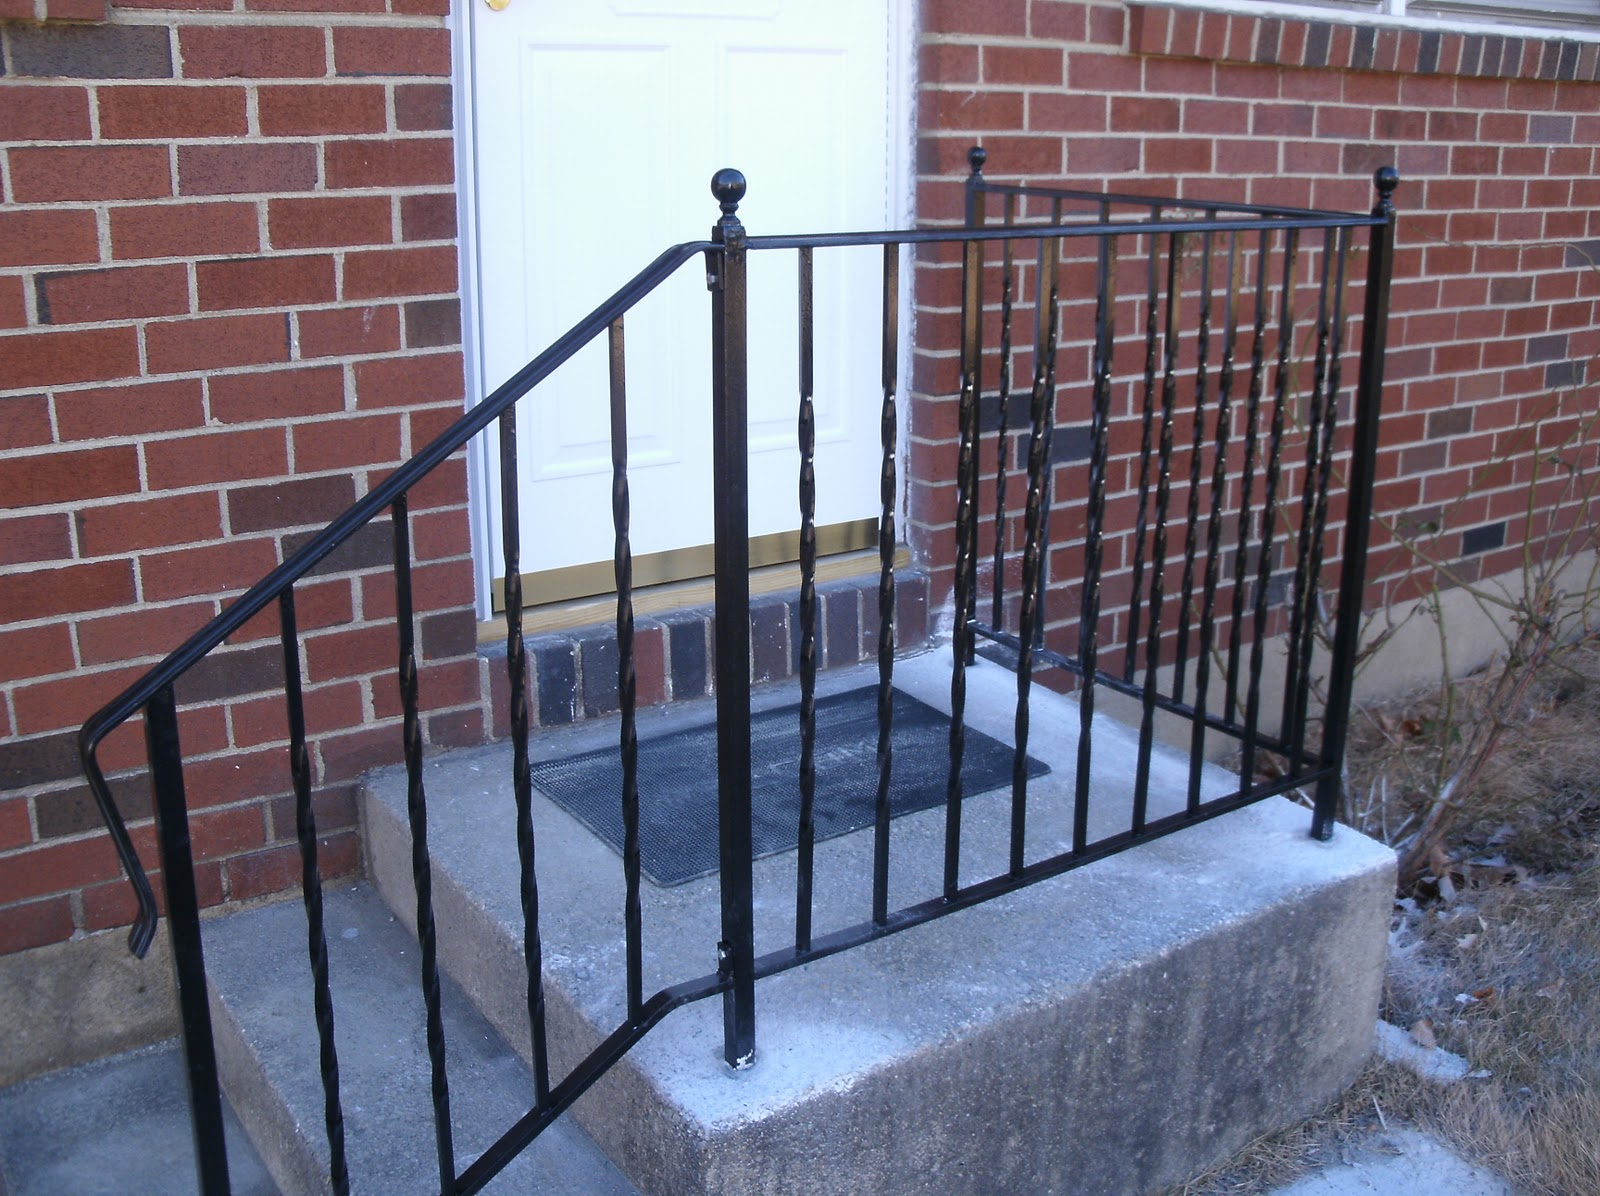 Outdoor Wrought Iron Railings - America's Best Lifechangers